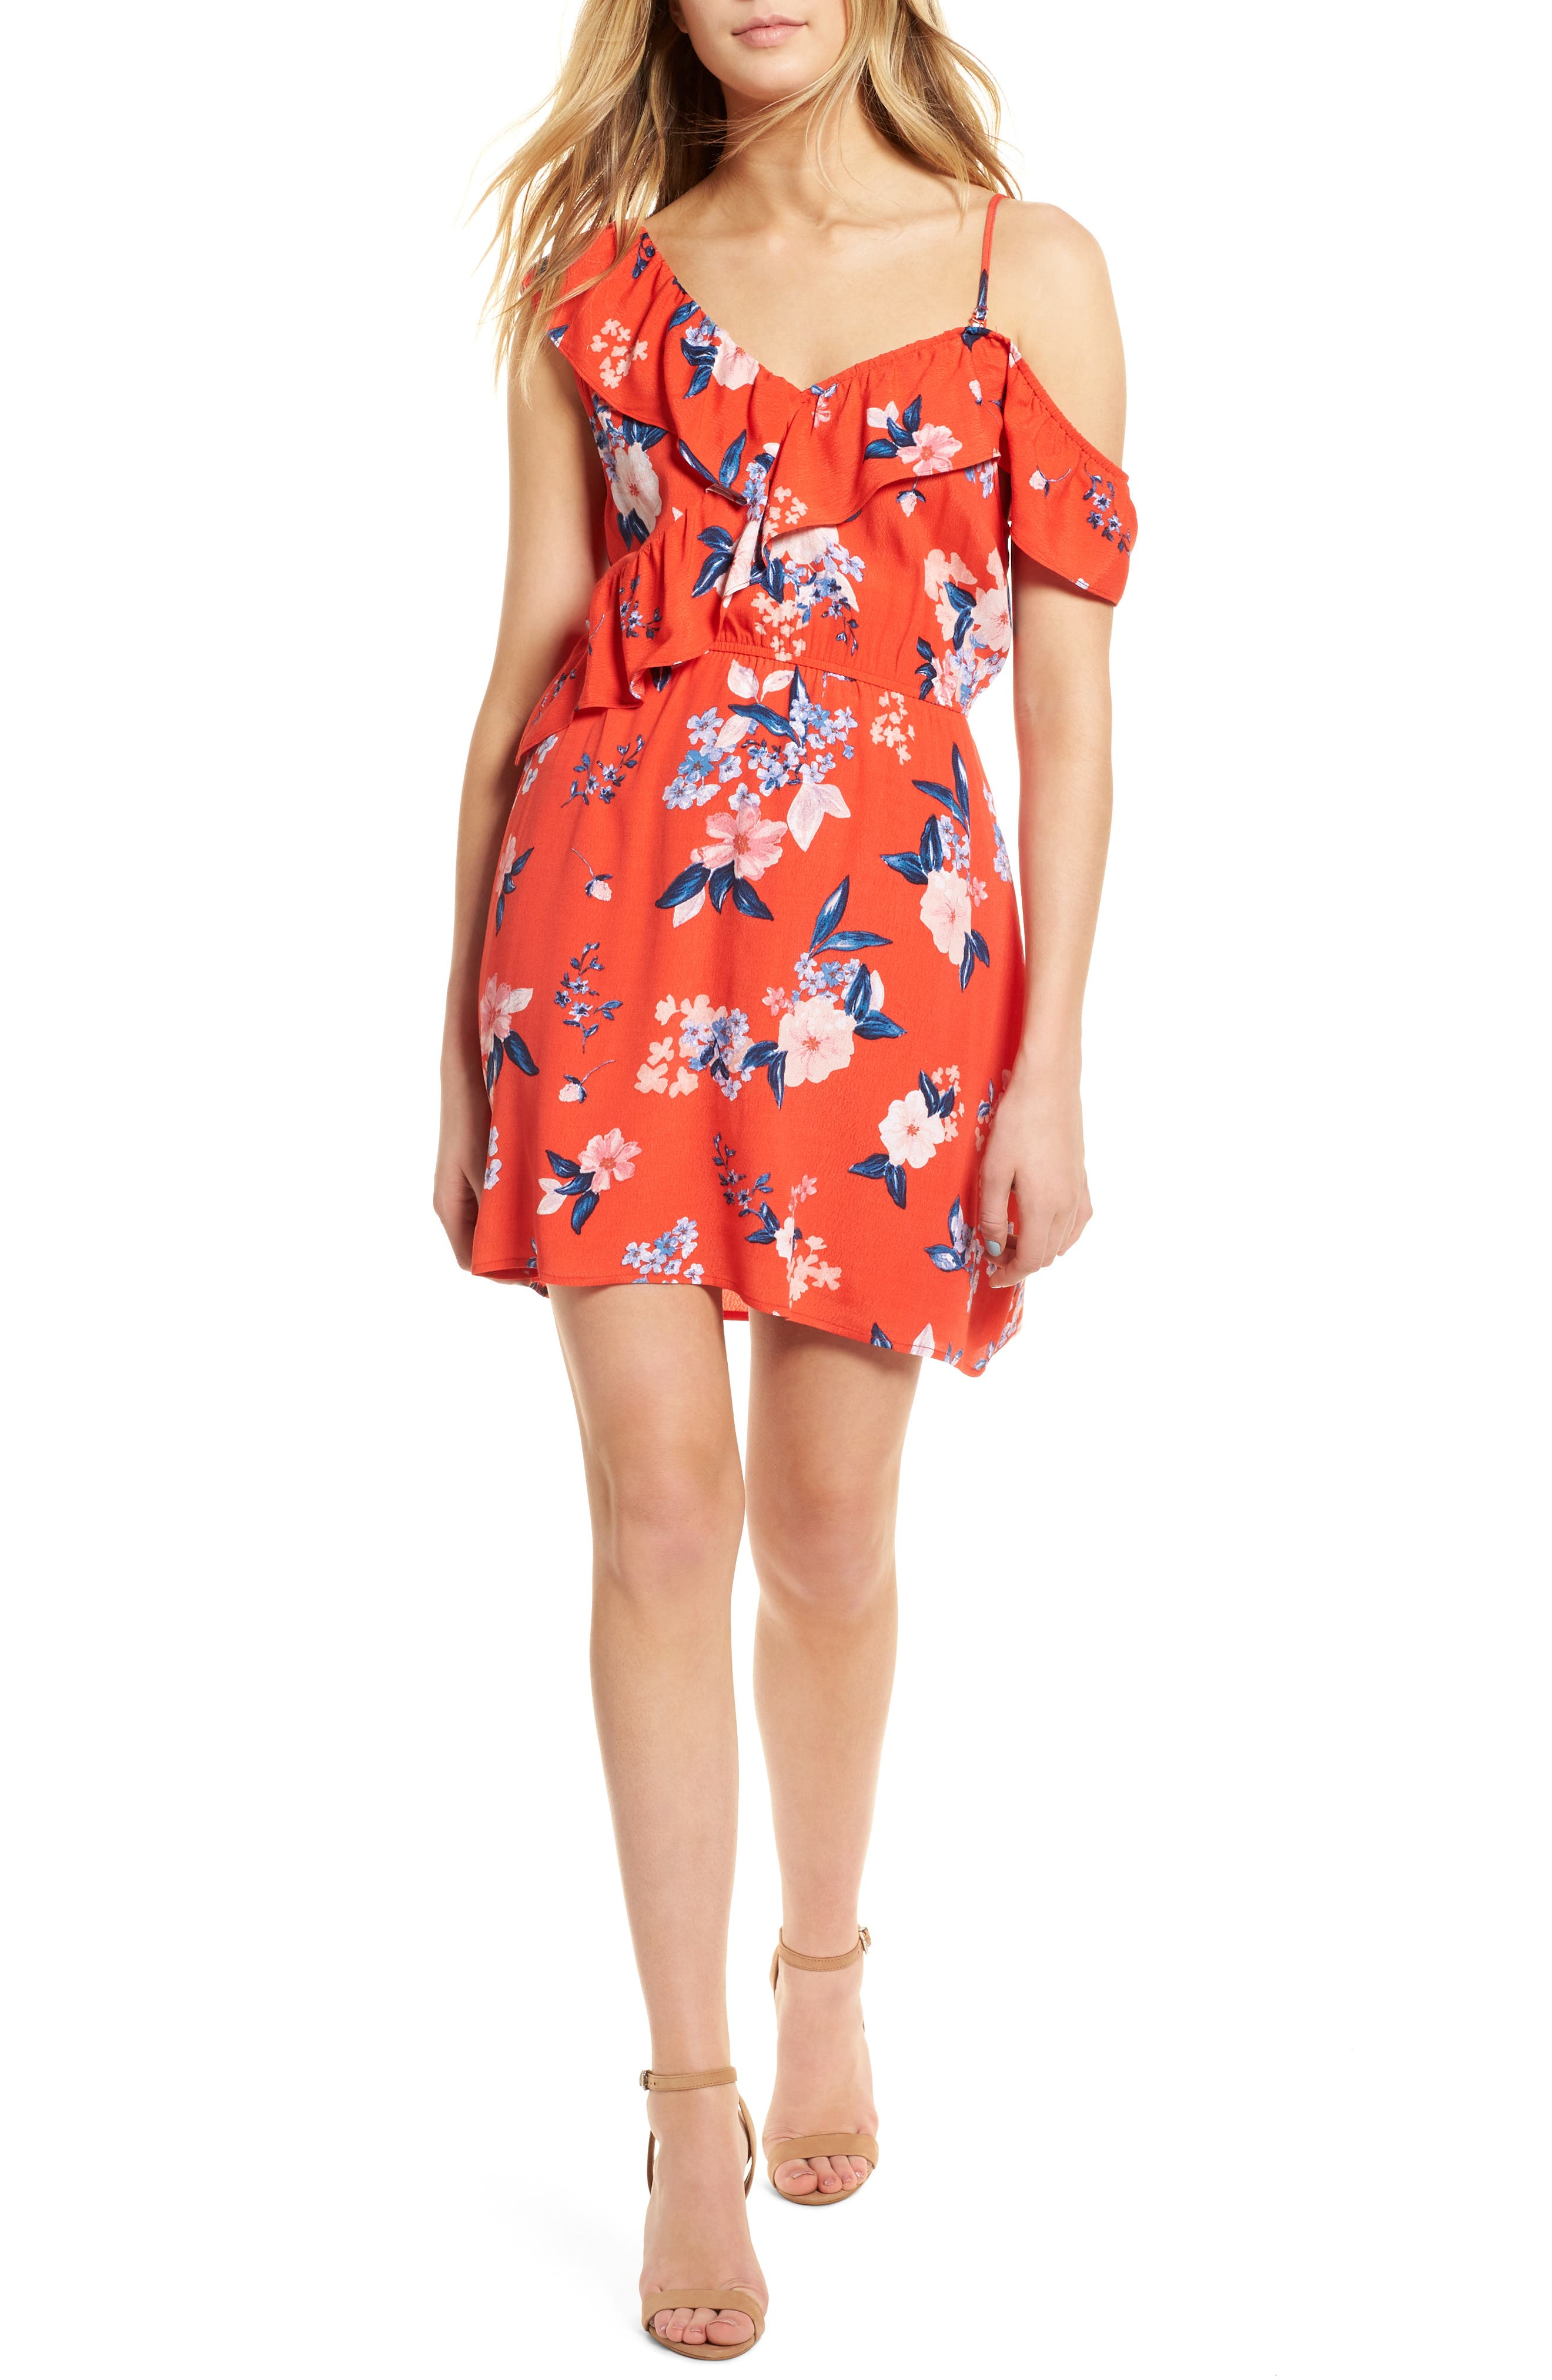 Cordetta Floral Asymmetrical Ruffle Dress,                             Main thumbnail 1, color,                             POPPY RED